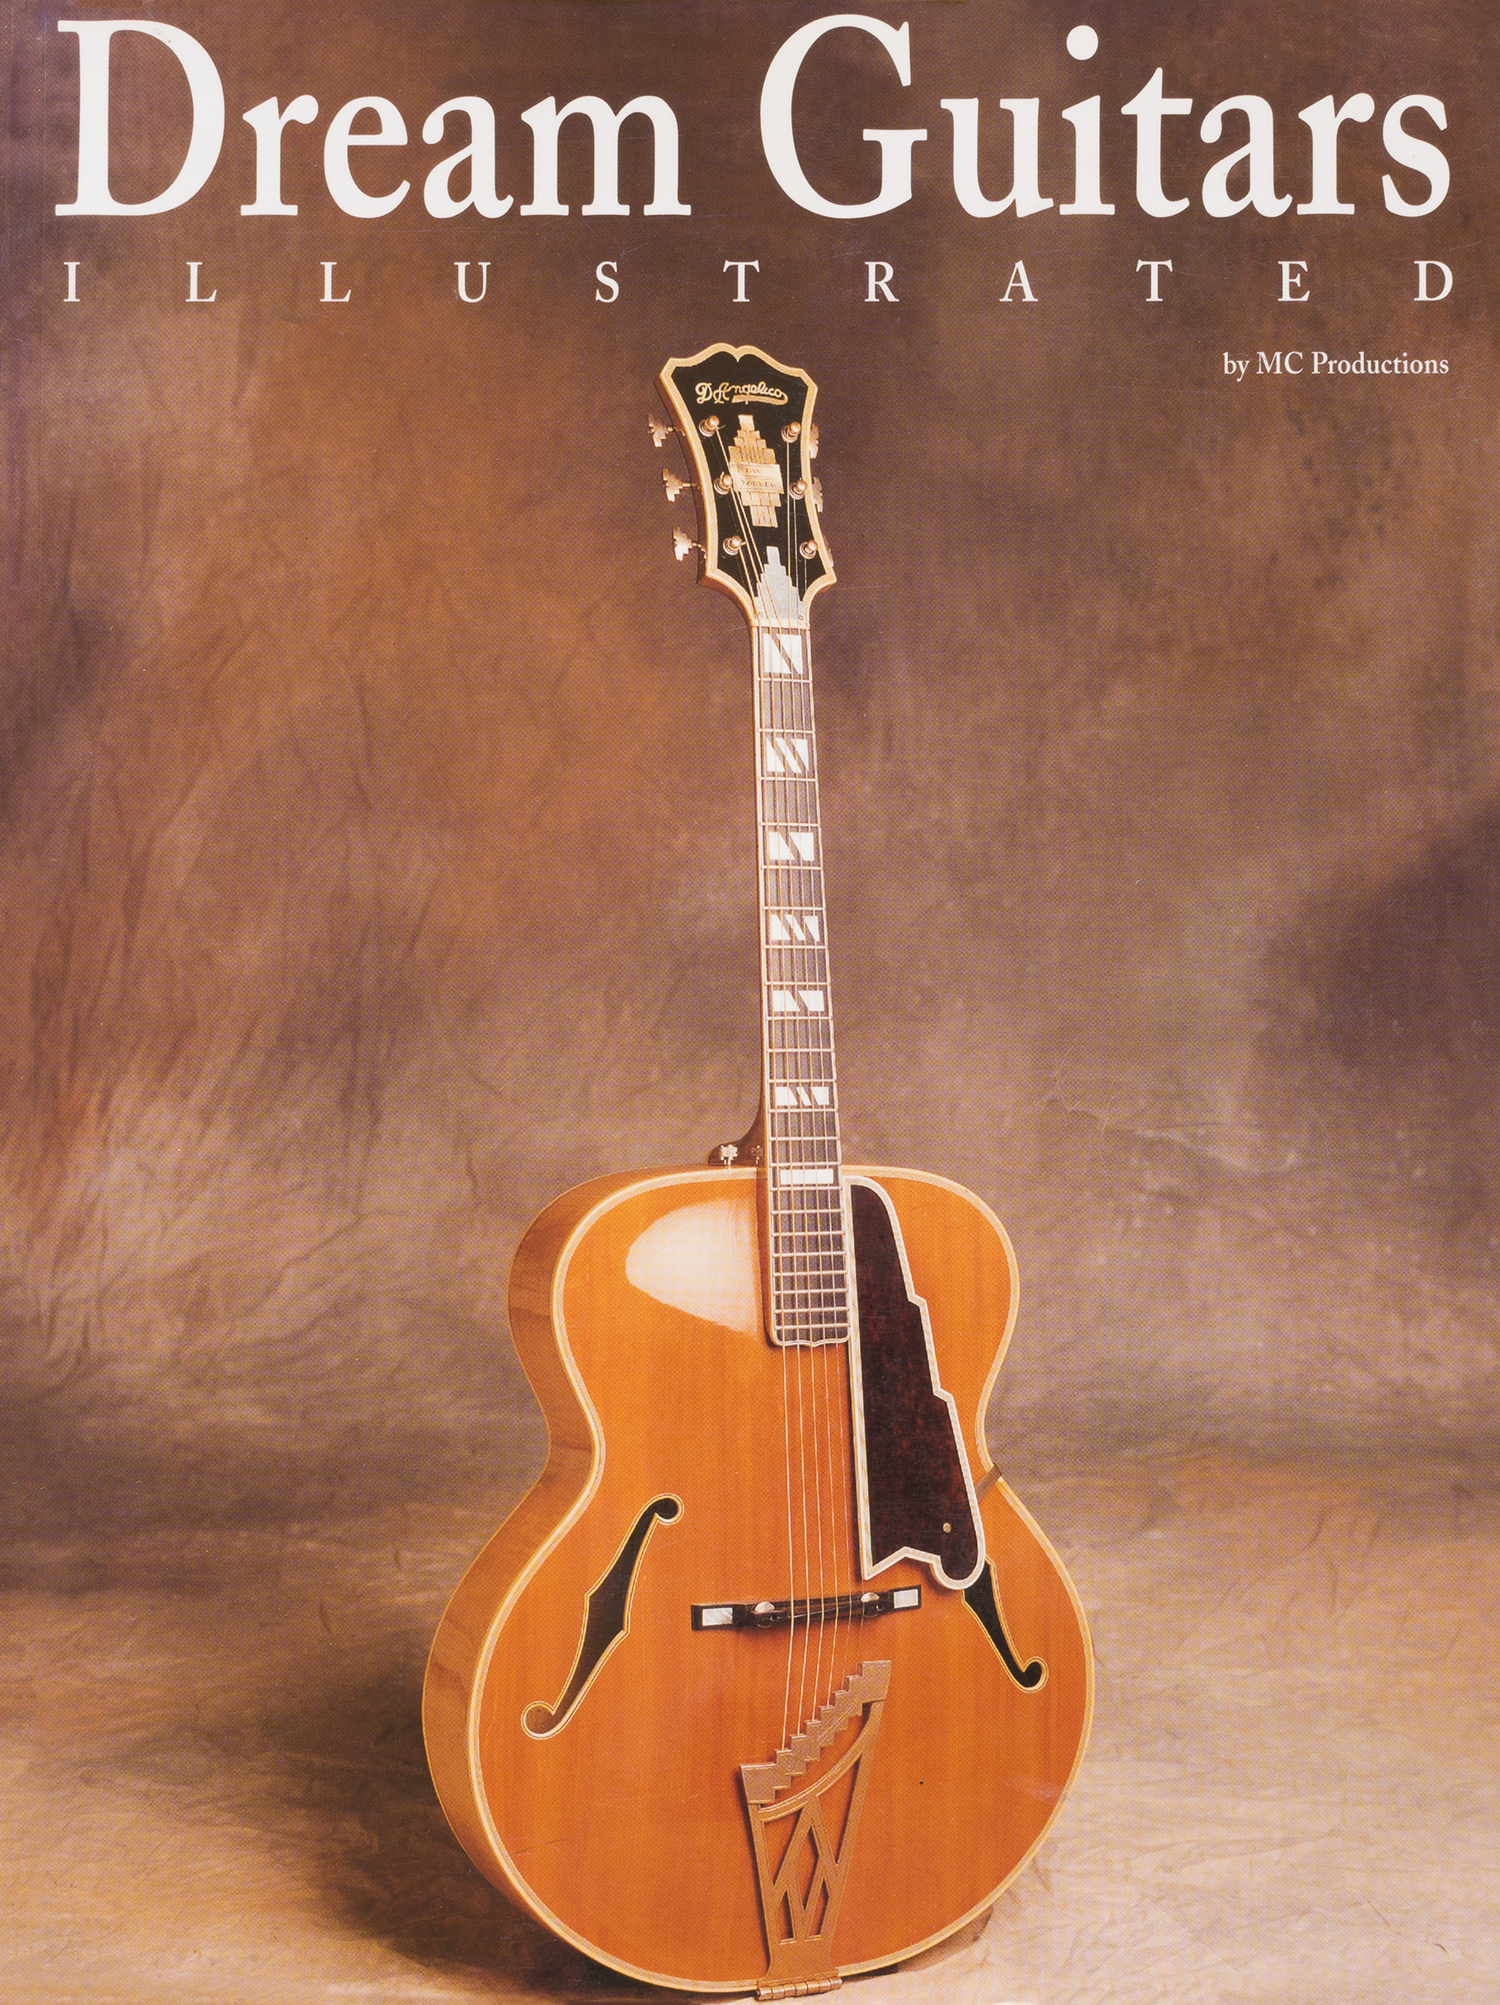 dream guitars illustrated by charles cellavalle features 13 of my collection instruments.